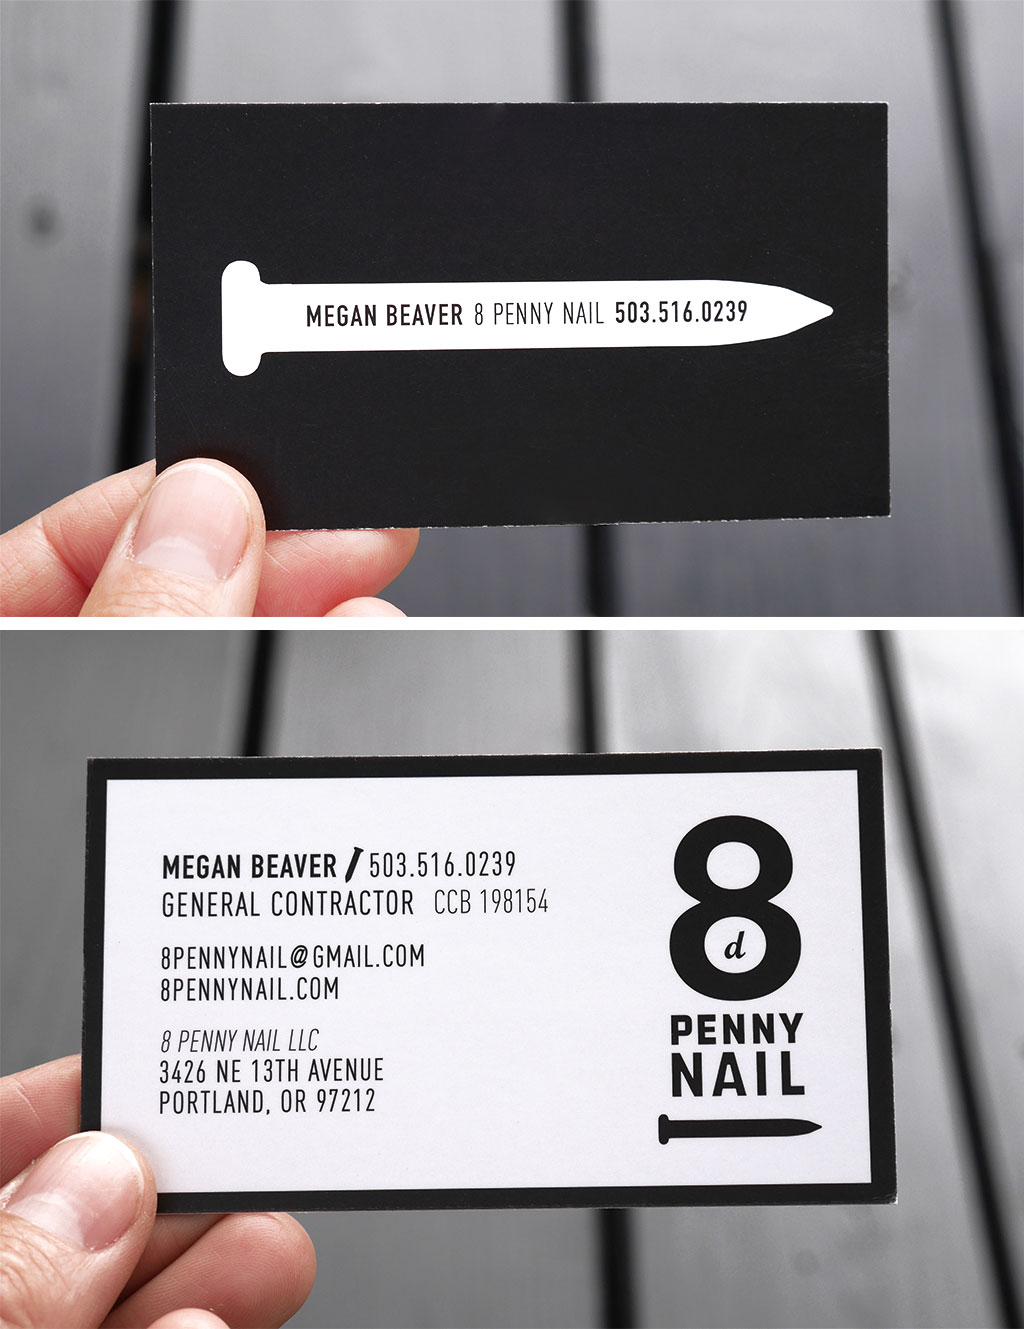 8 penny nail logo and business card by both corner design |